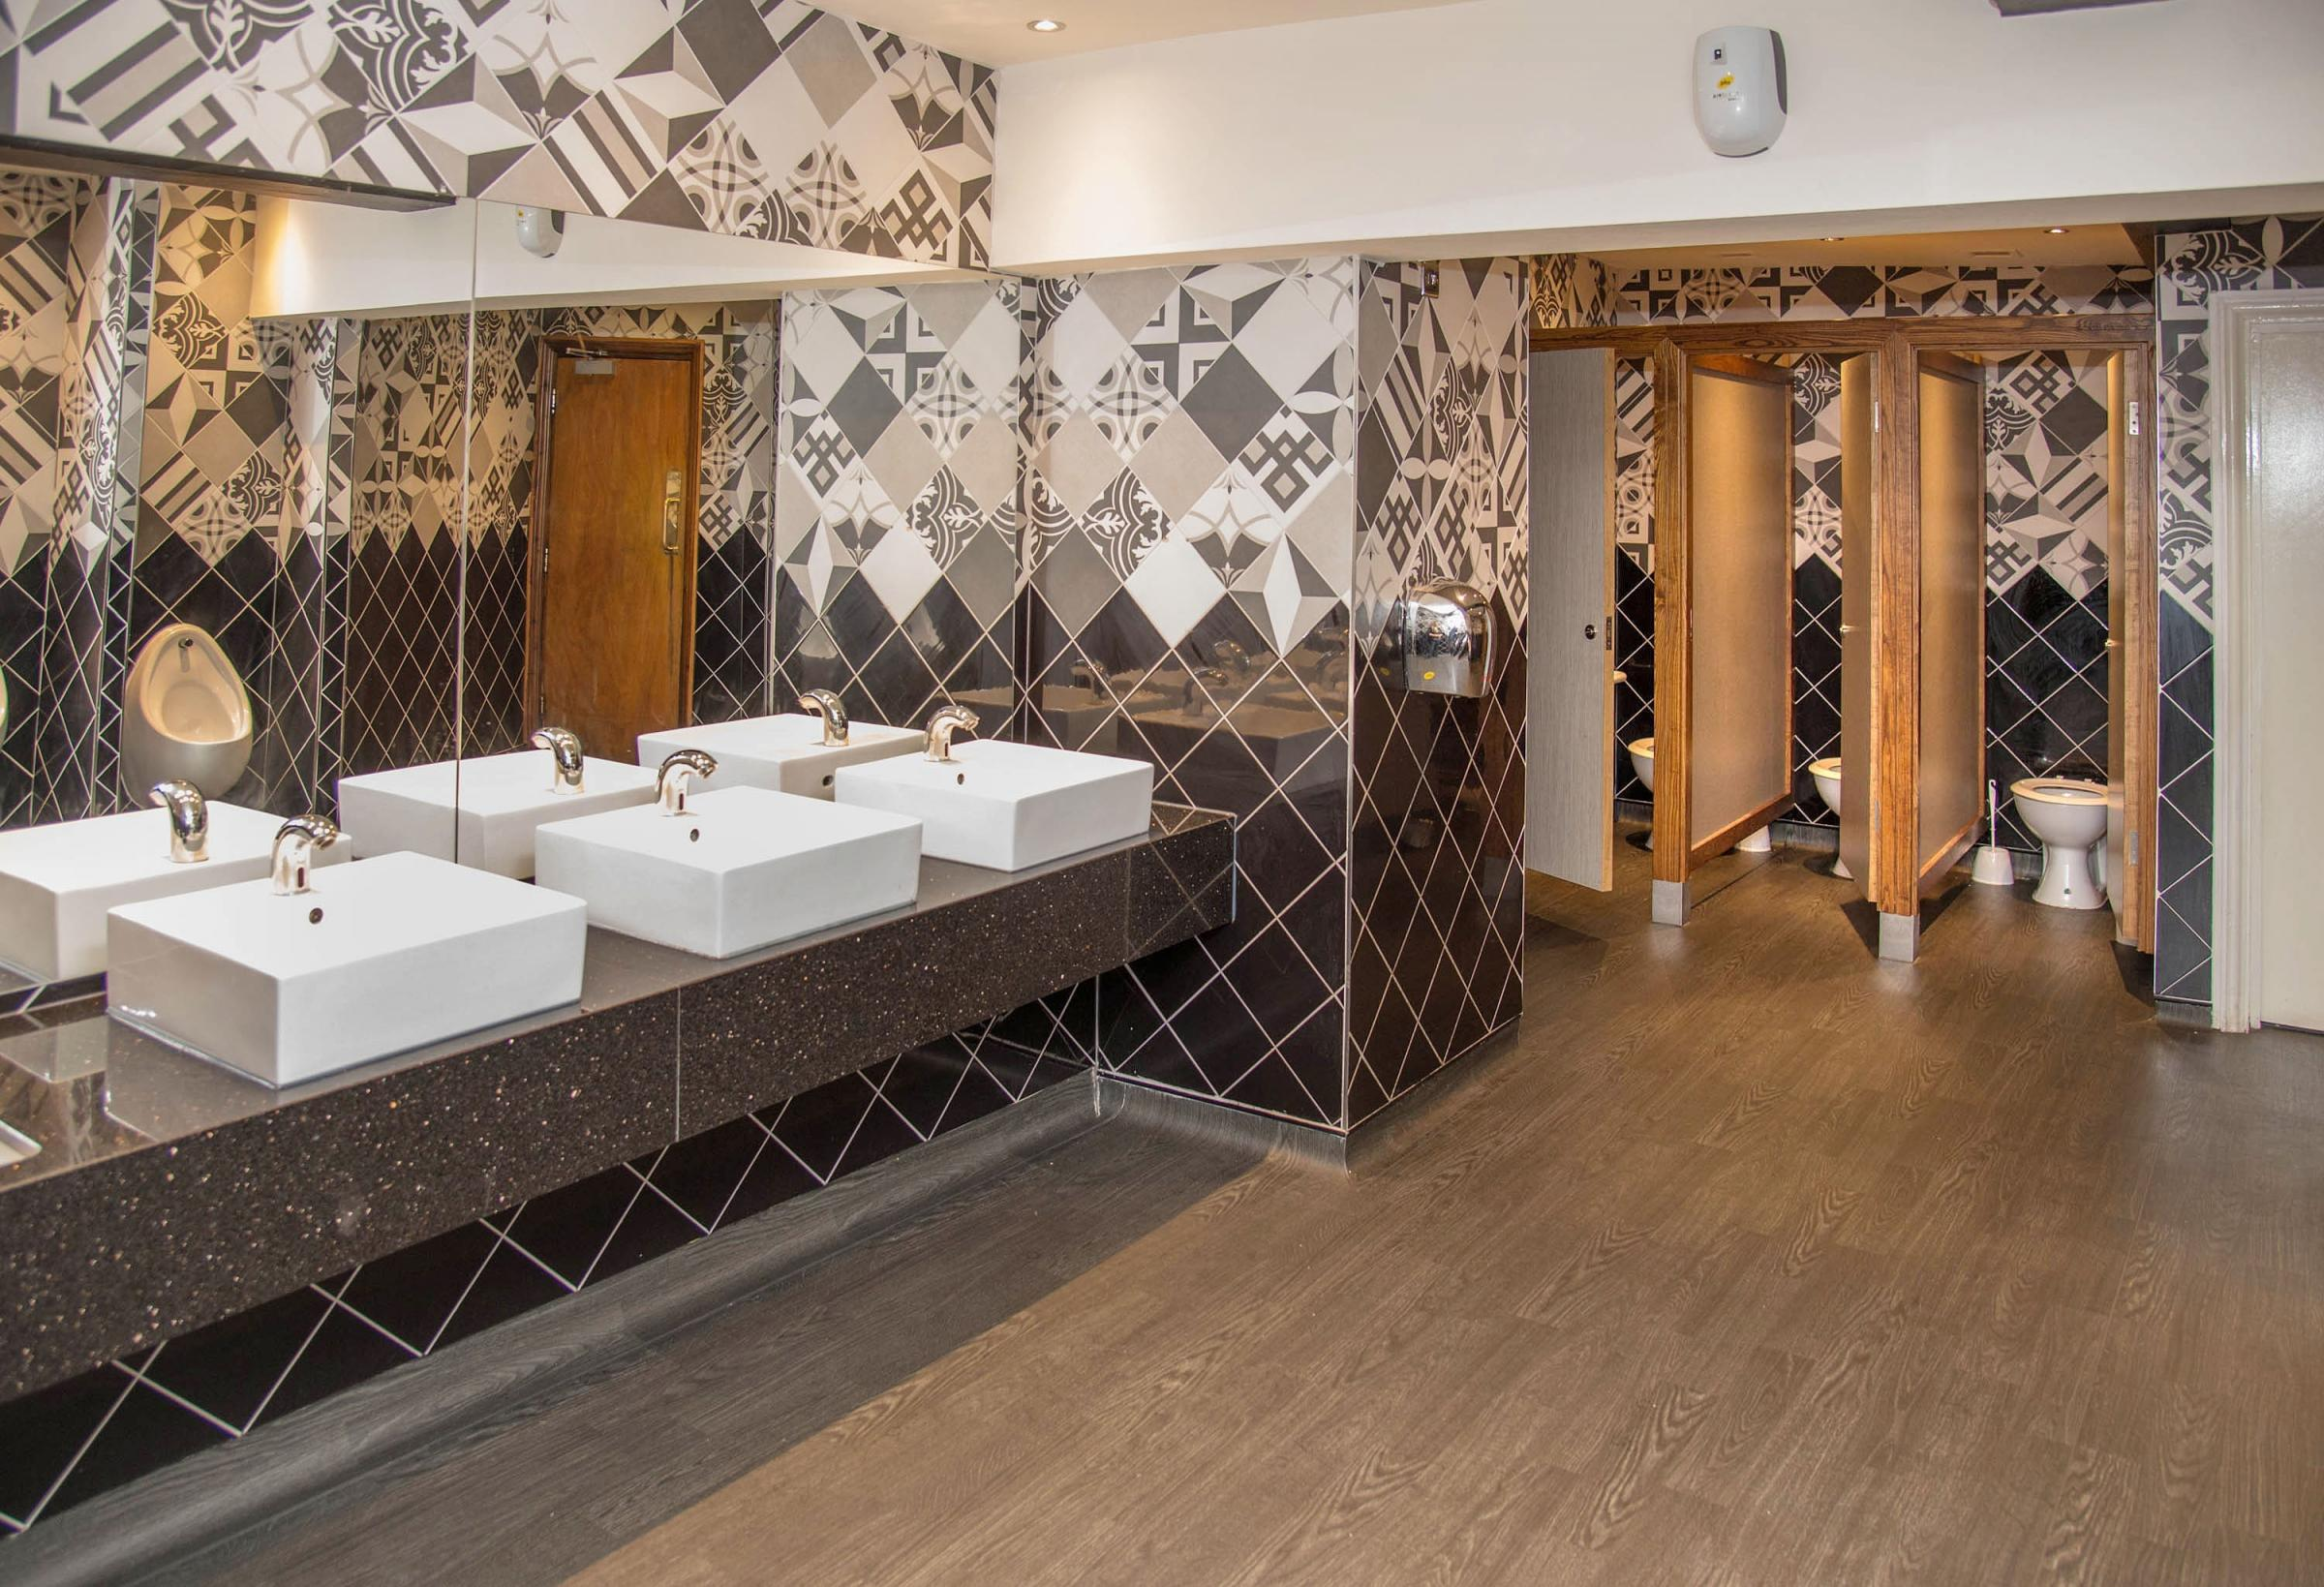 TOILETS: The Old Swanne Inn toilets have won an award